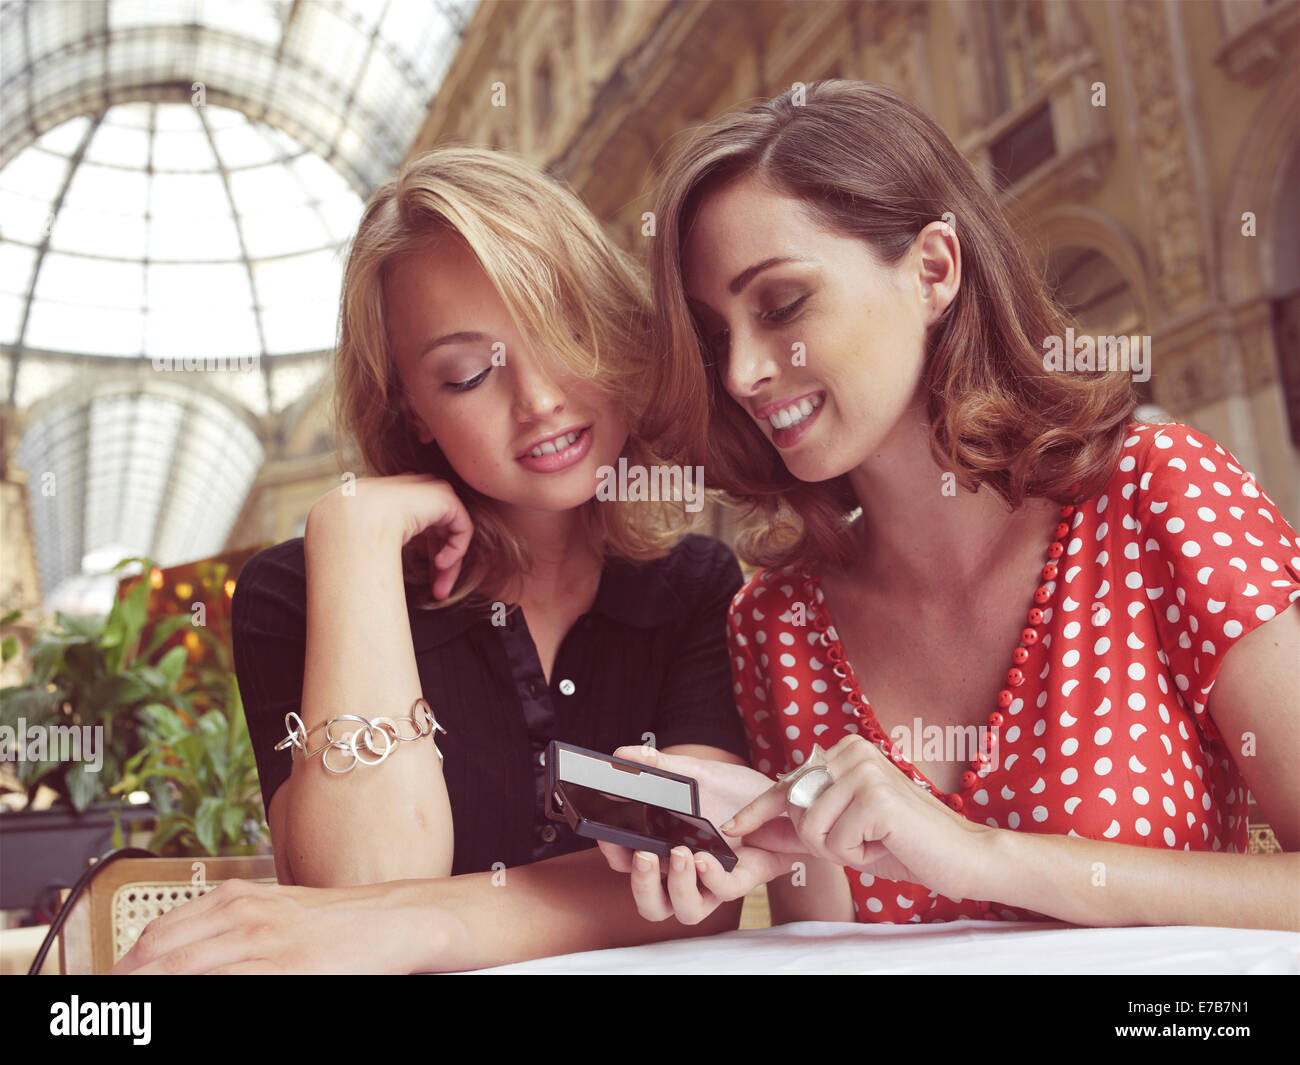 young women smiling and laughing as they look at text message on mobile phone - Stock Image